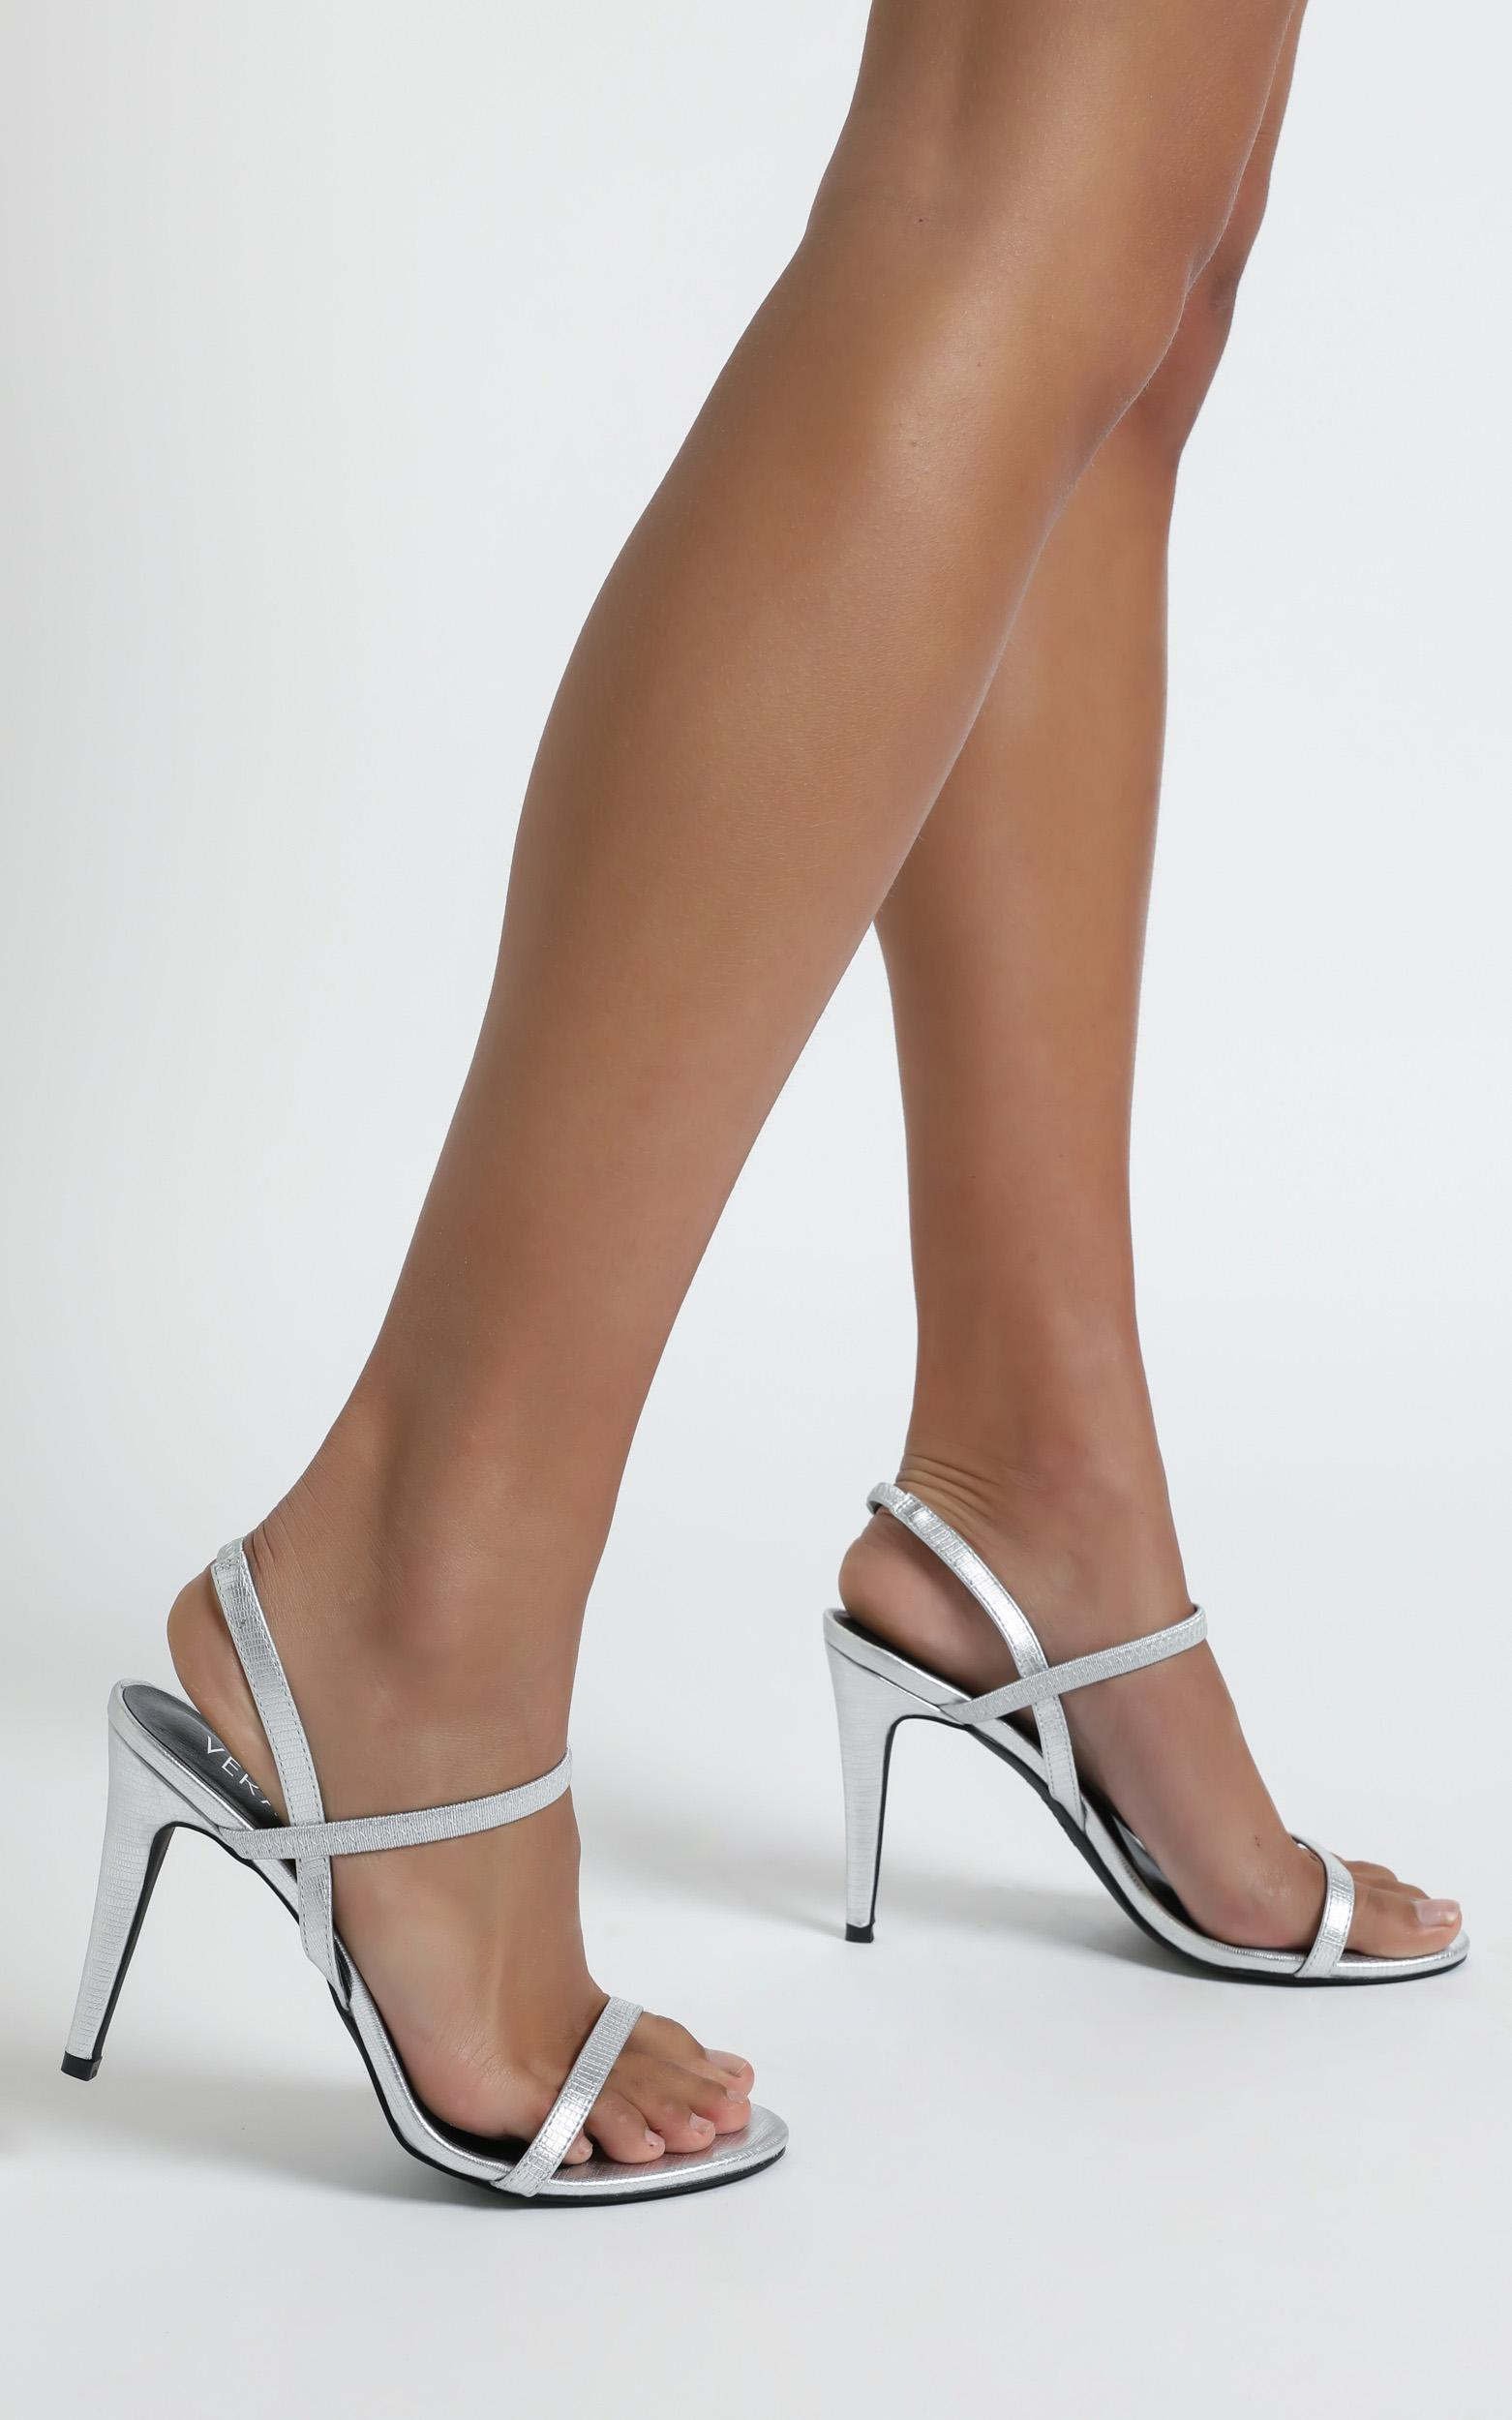 Verali - Obsess Heels In silver lizard - 5, Silver, hi-res image number null